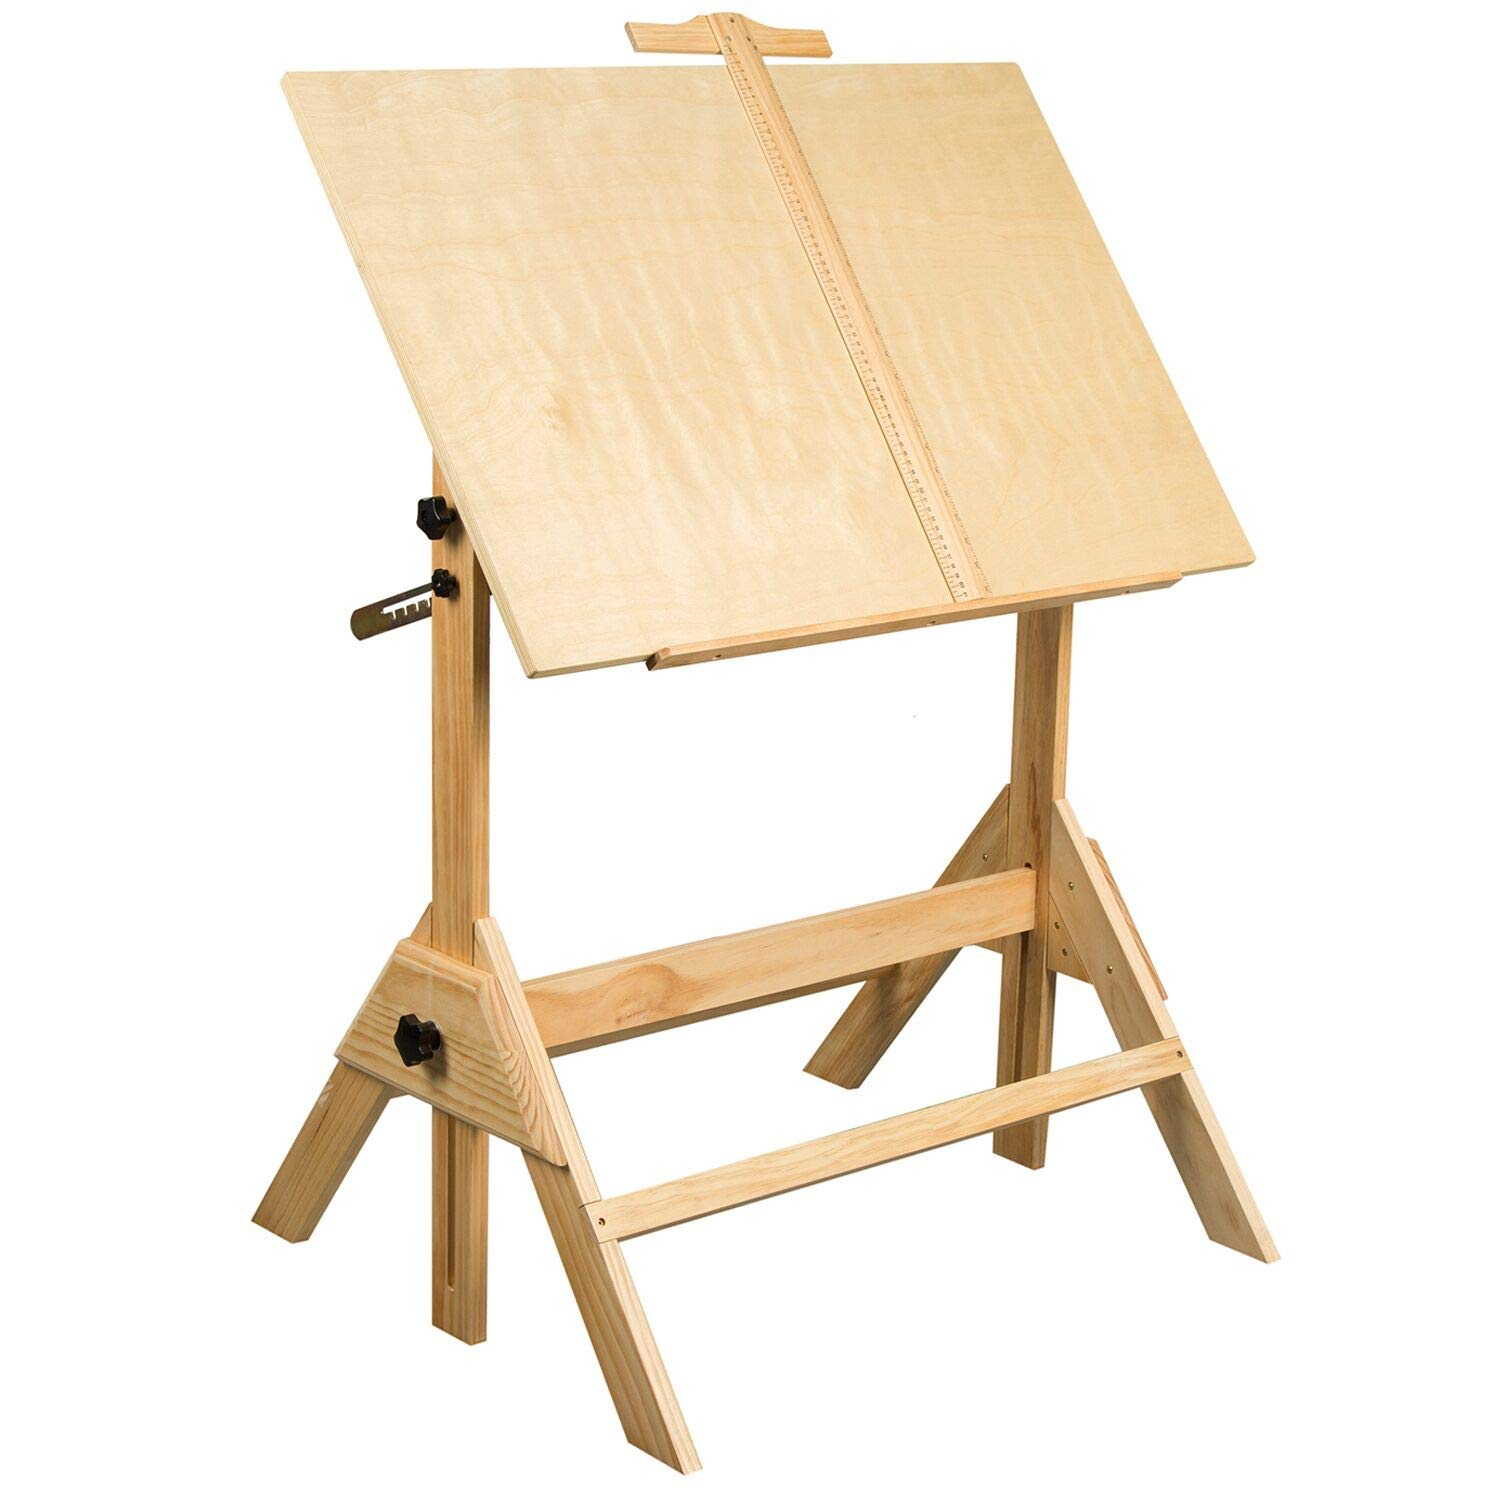 Wood Drafting Table by MEEDEN - Height Adjustable Drawing Desk with Tiltable Tabletop for Artwork, Graphic Design, Reading and Writing, 36in by MEEDEN